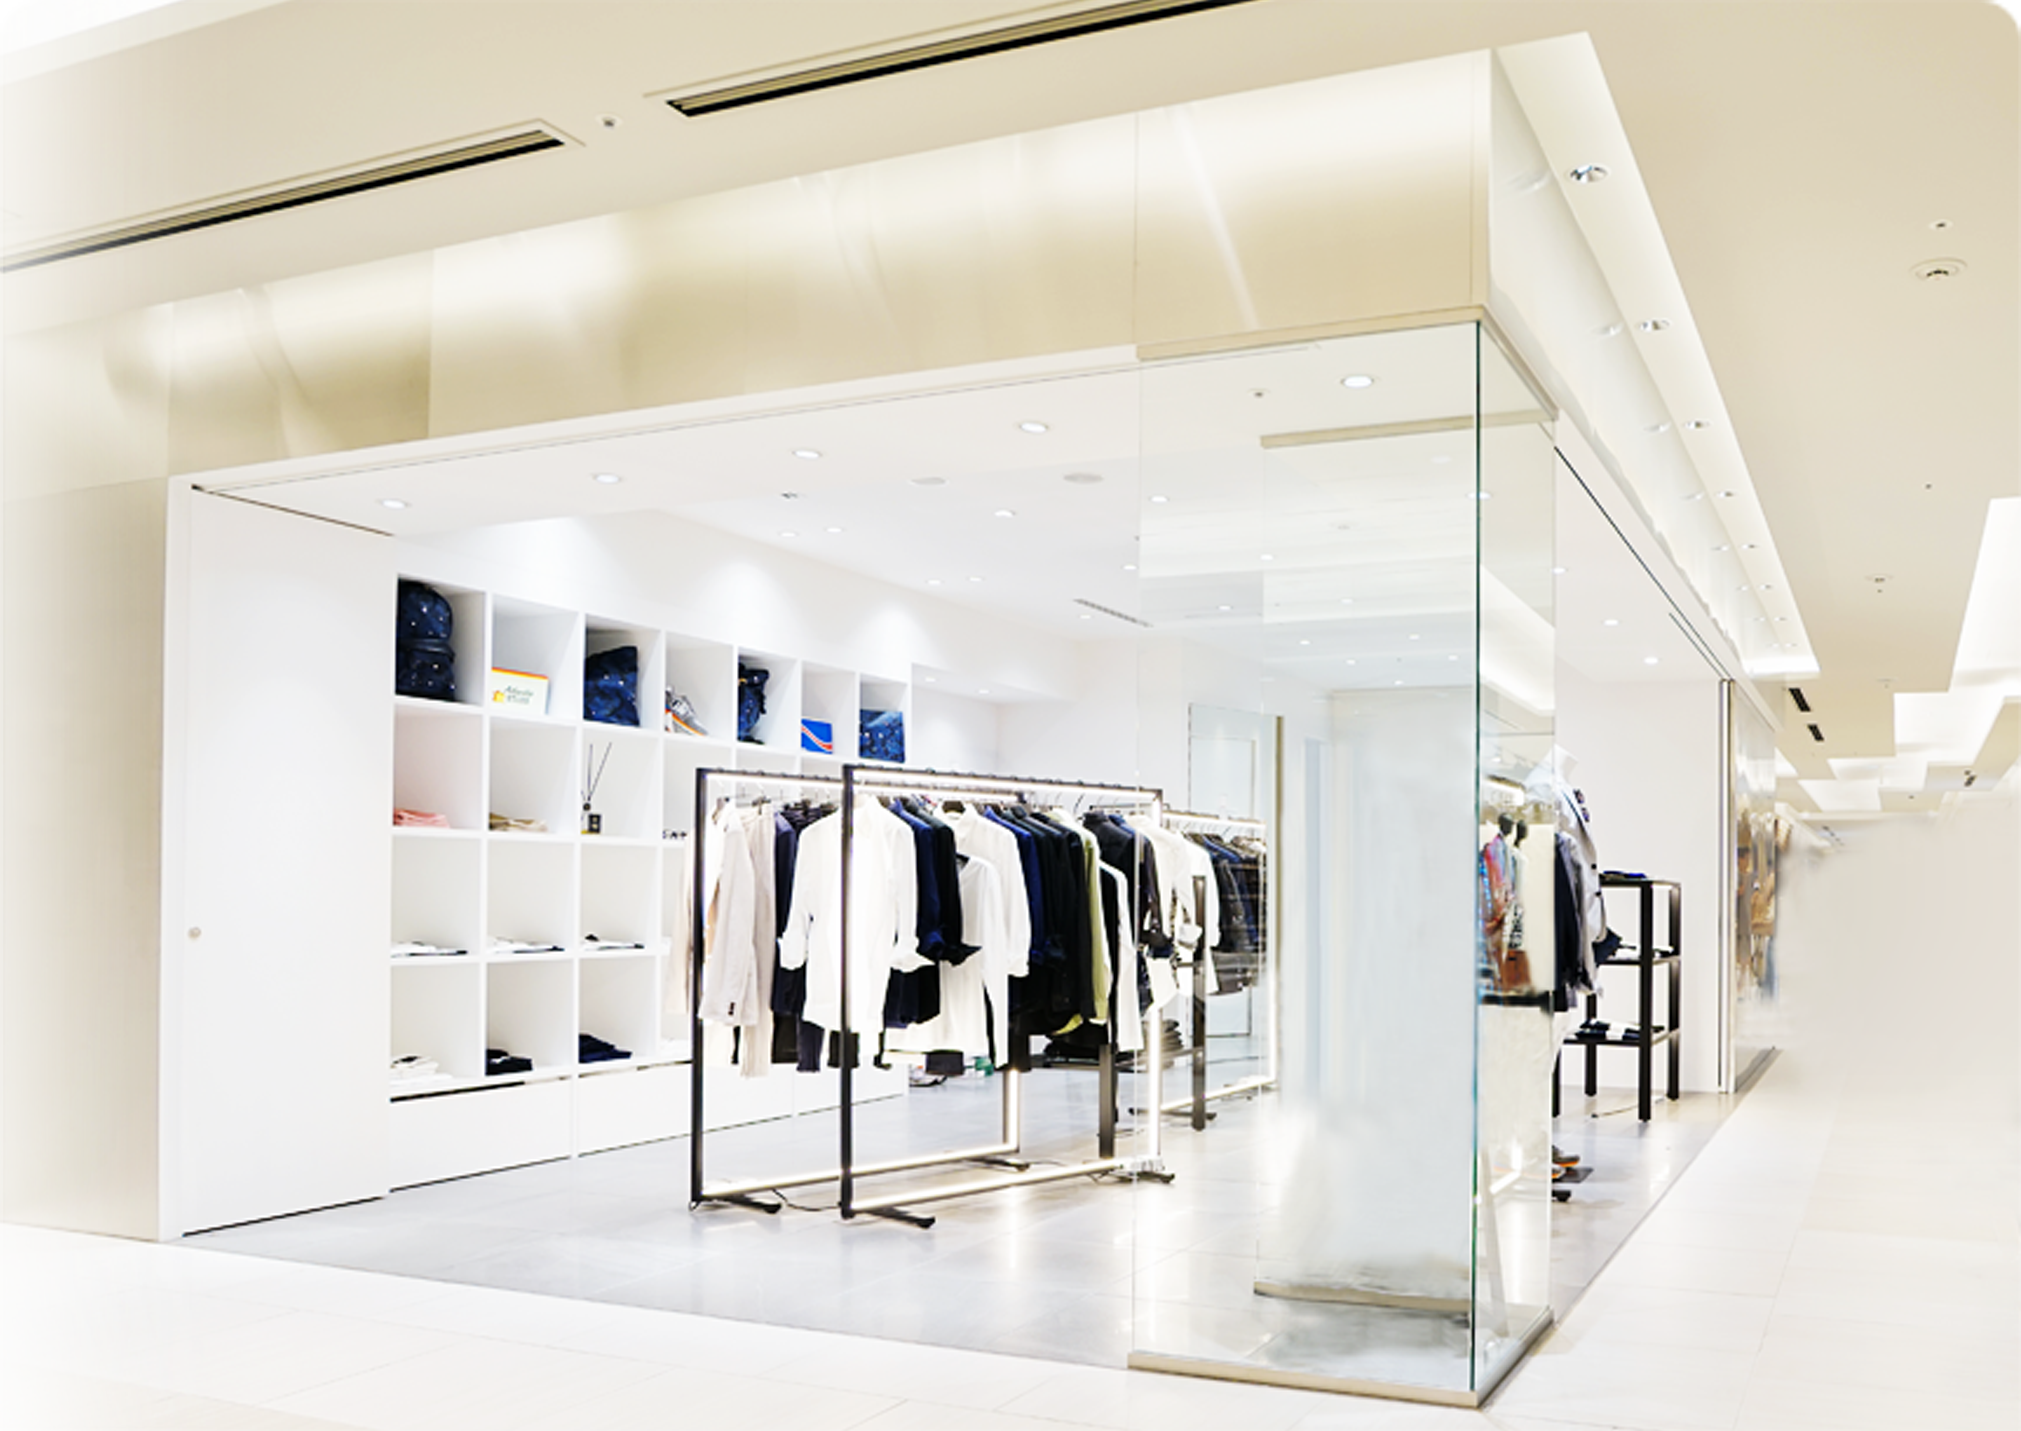 Stores Technology: Clienteling, Endless Aisle, mPOS and Fitting Room | PredictSpring